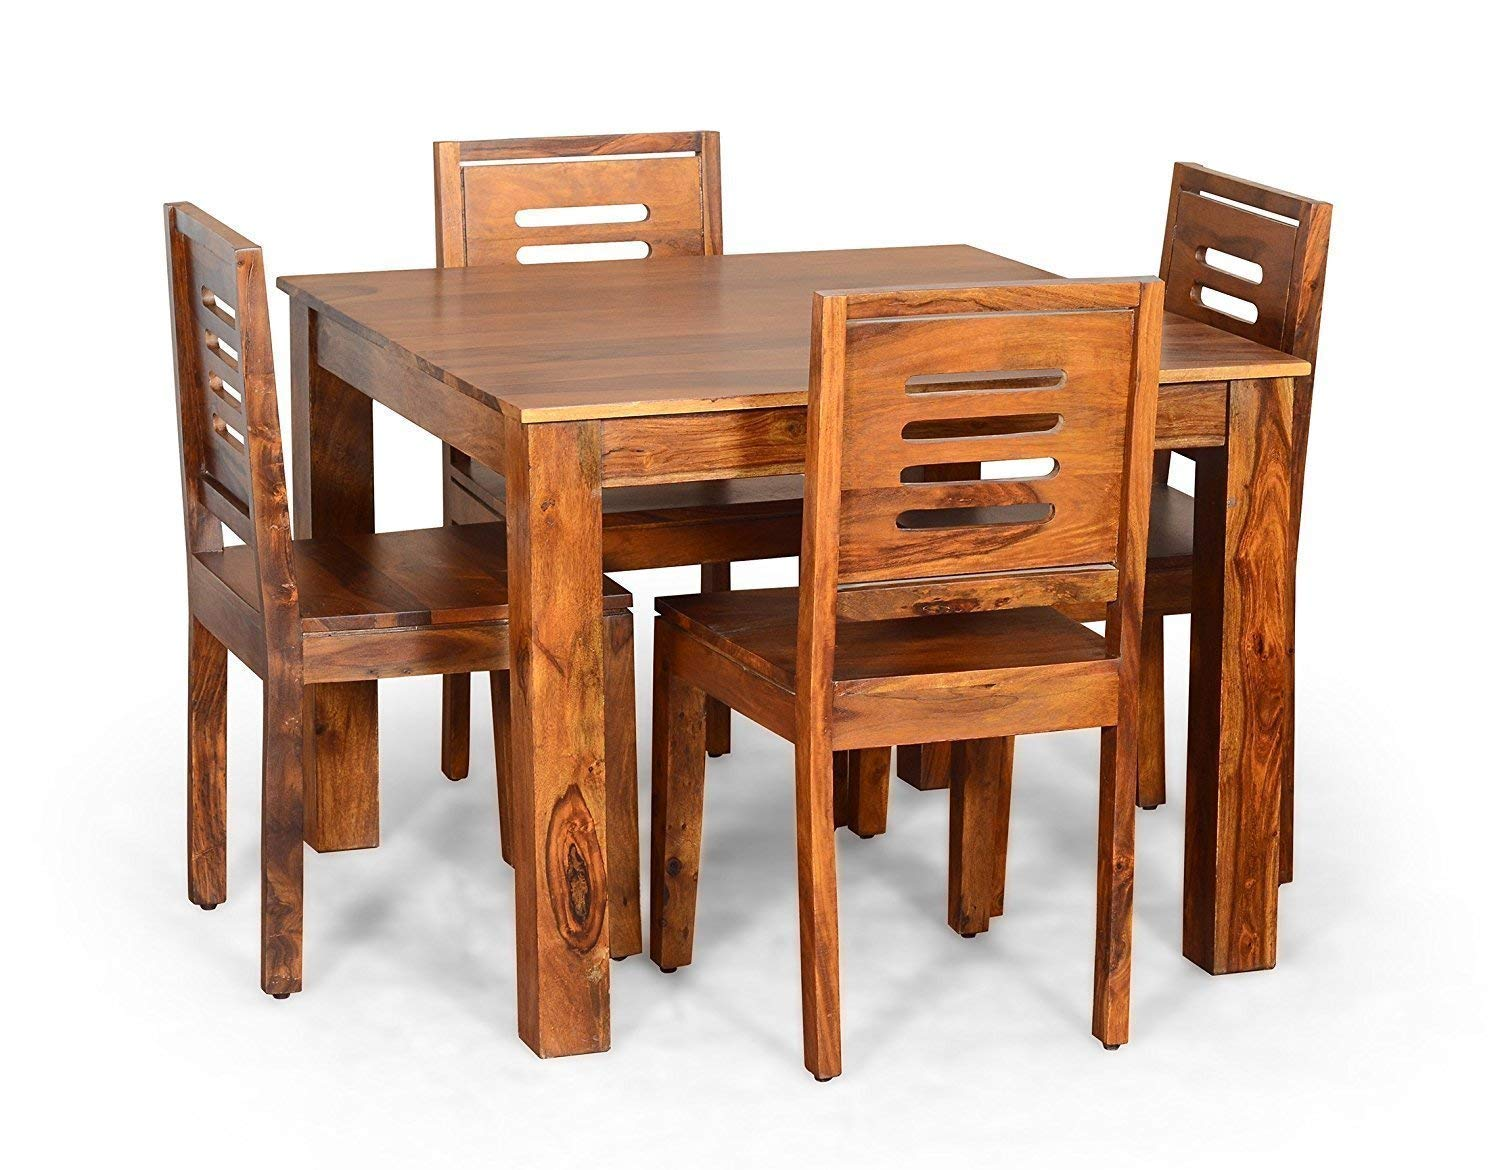 DriftingWood Sheesham Wood Dining Table Set with 4 Chairs for Living Room | 4 Seater Dining Table Set | Honey Finish  sc 1 st  Driftingwood & Dining Table - Driftingwood